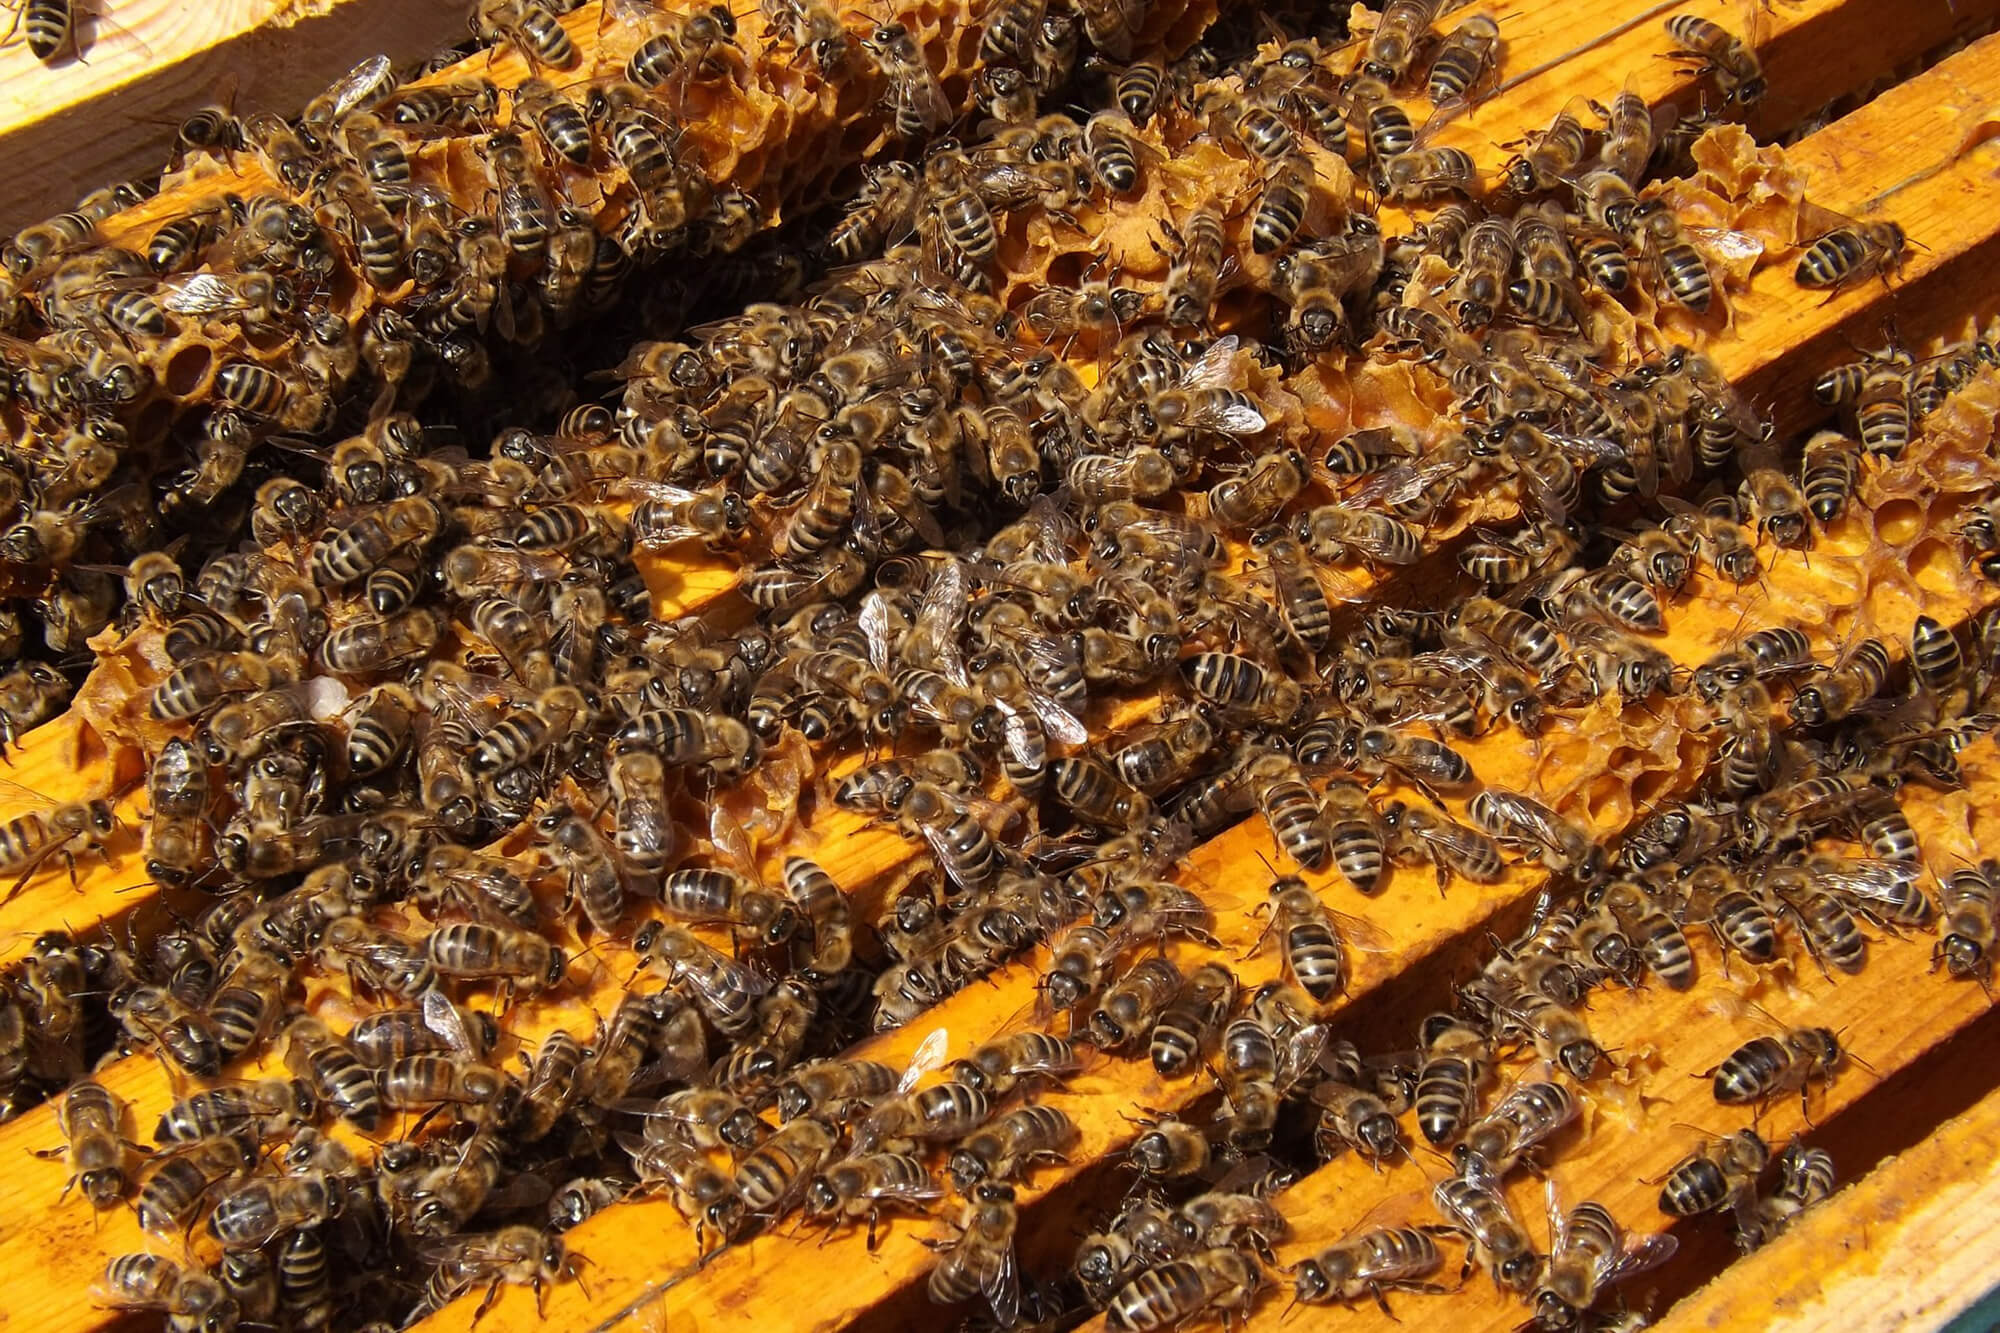 A colony of honeybees working on bee hive